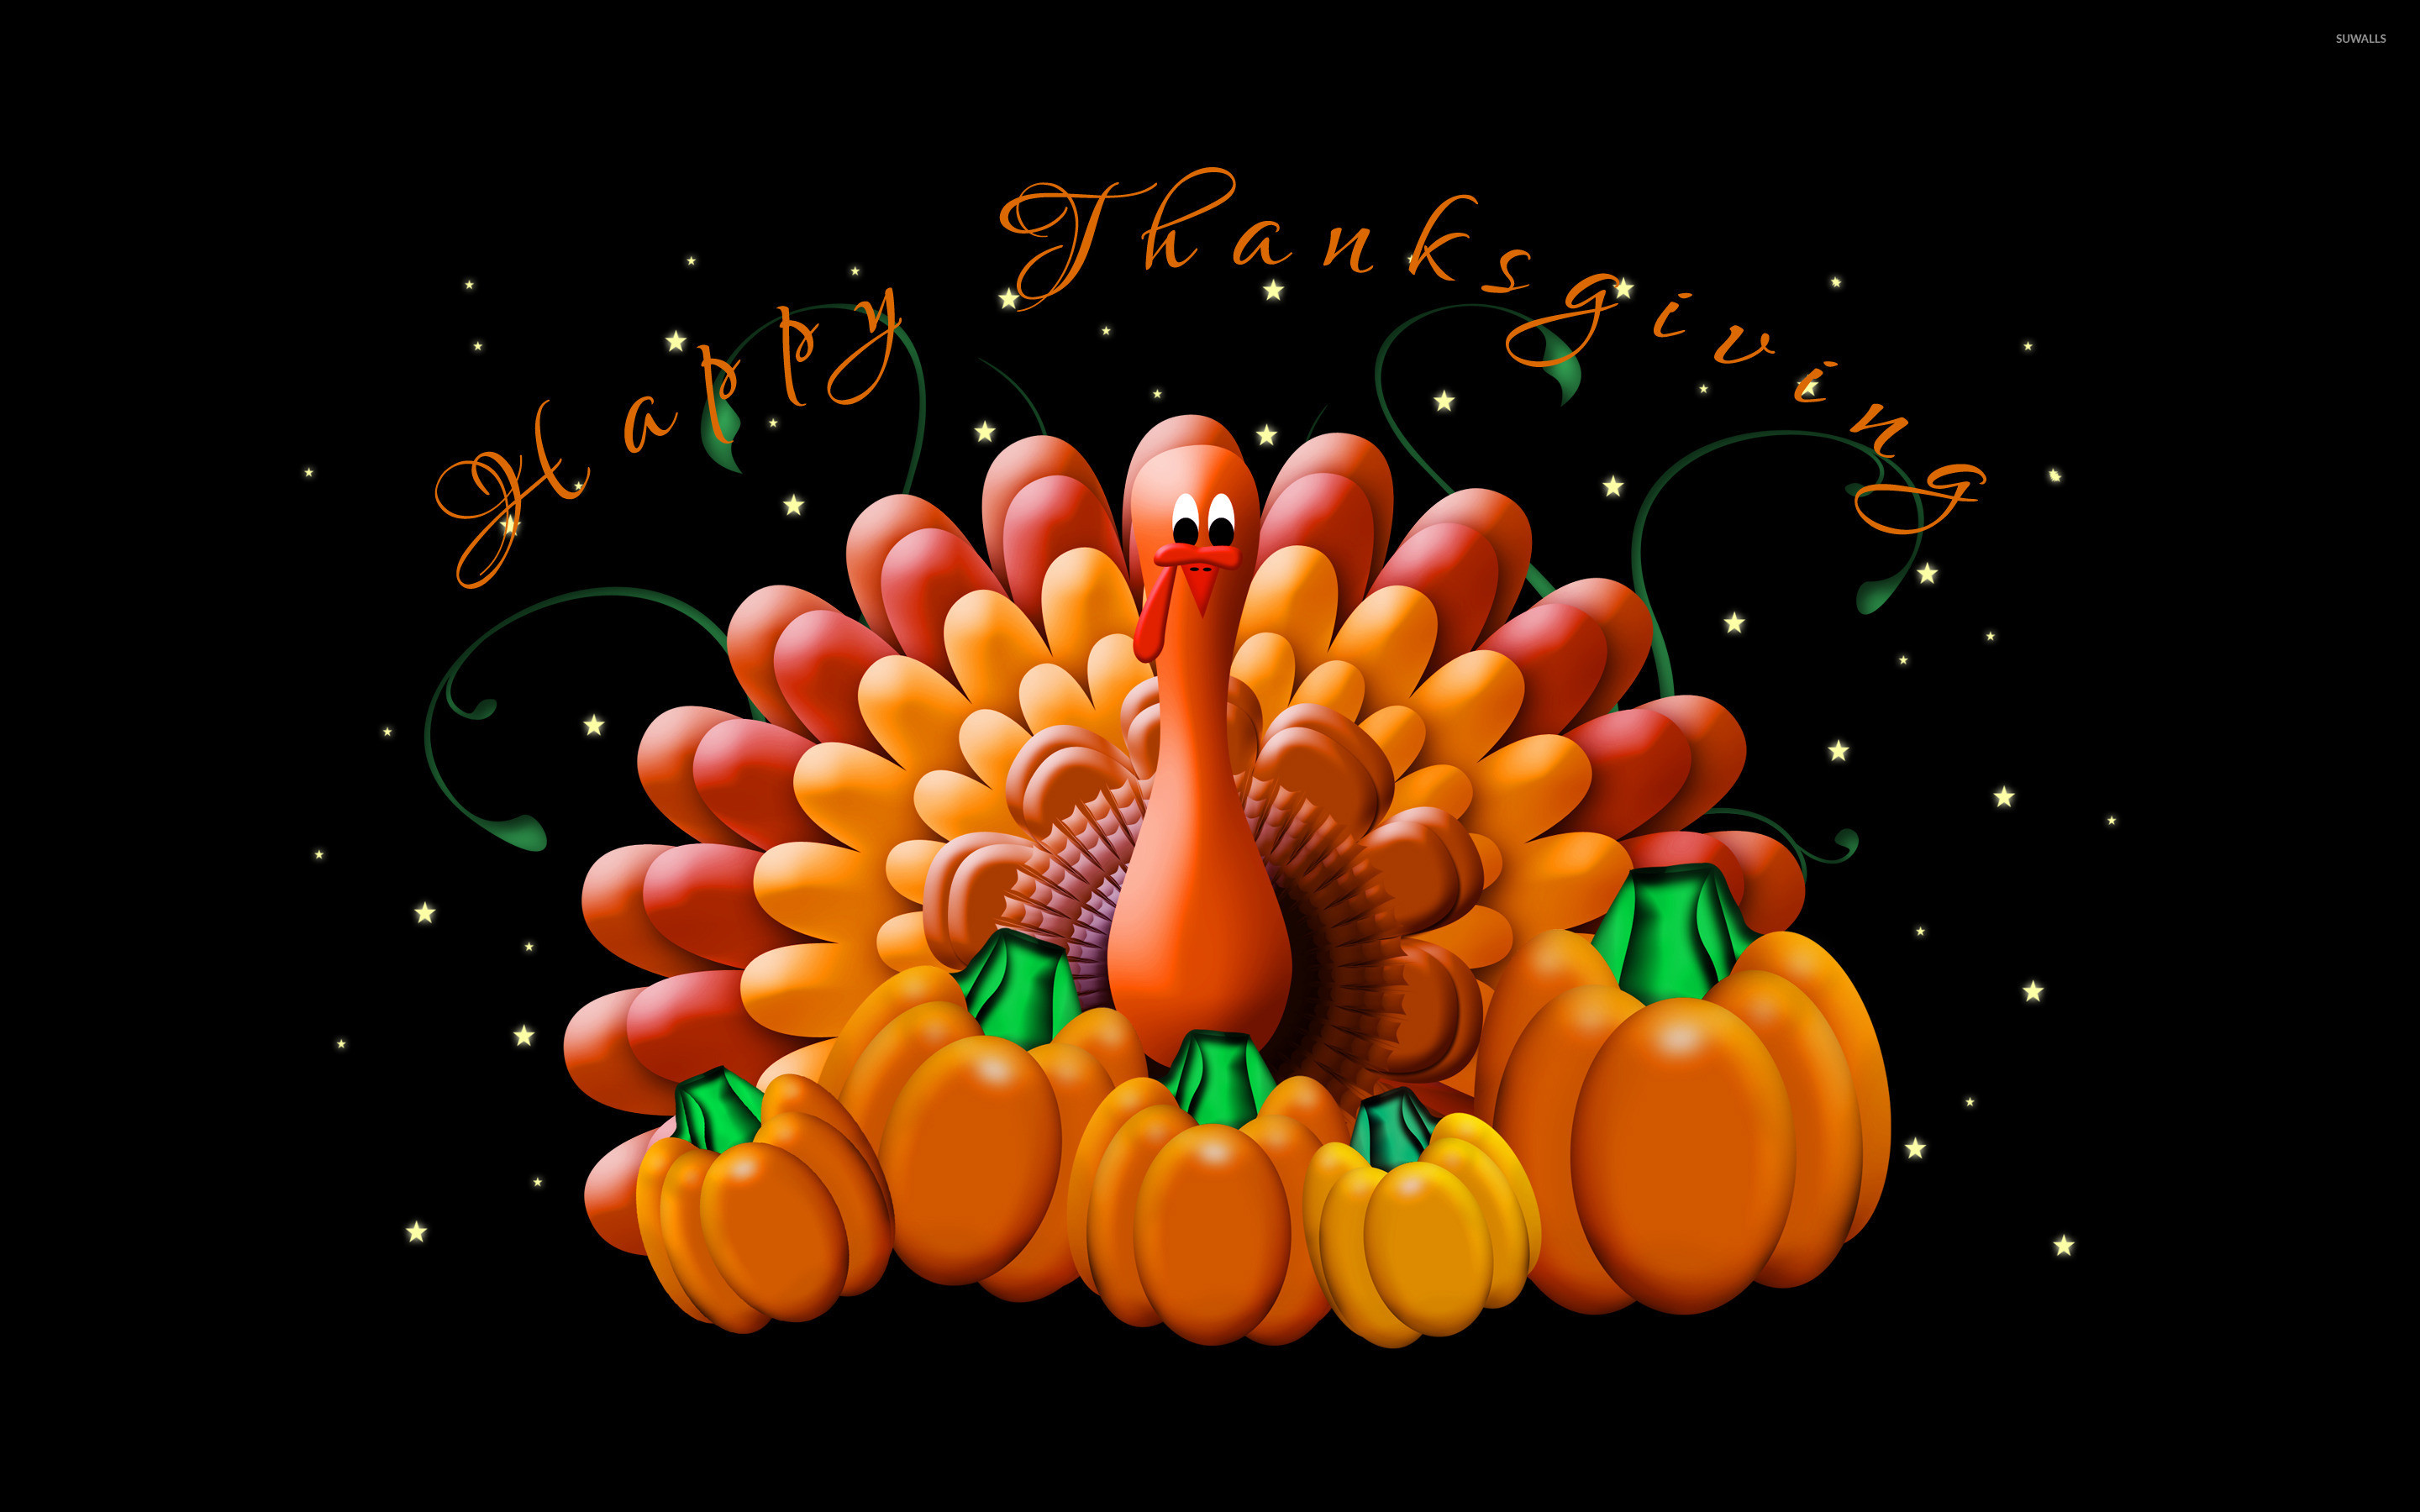 2880x1800 Happy Thanksgiving wallpaper